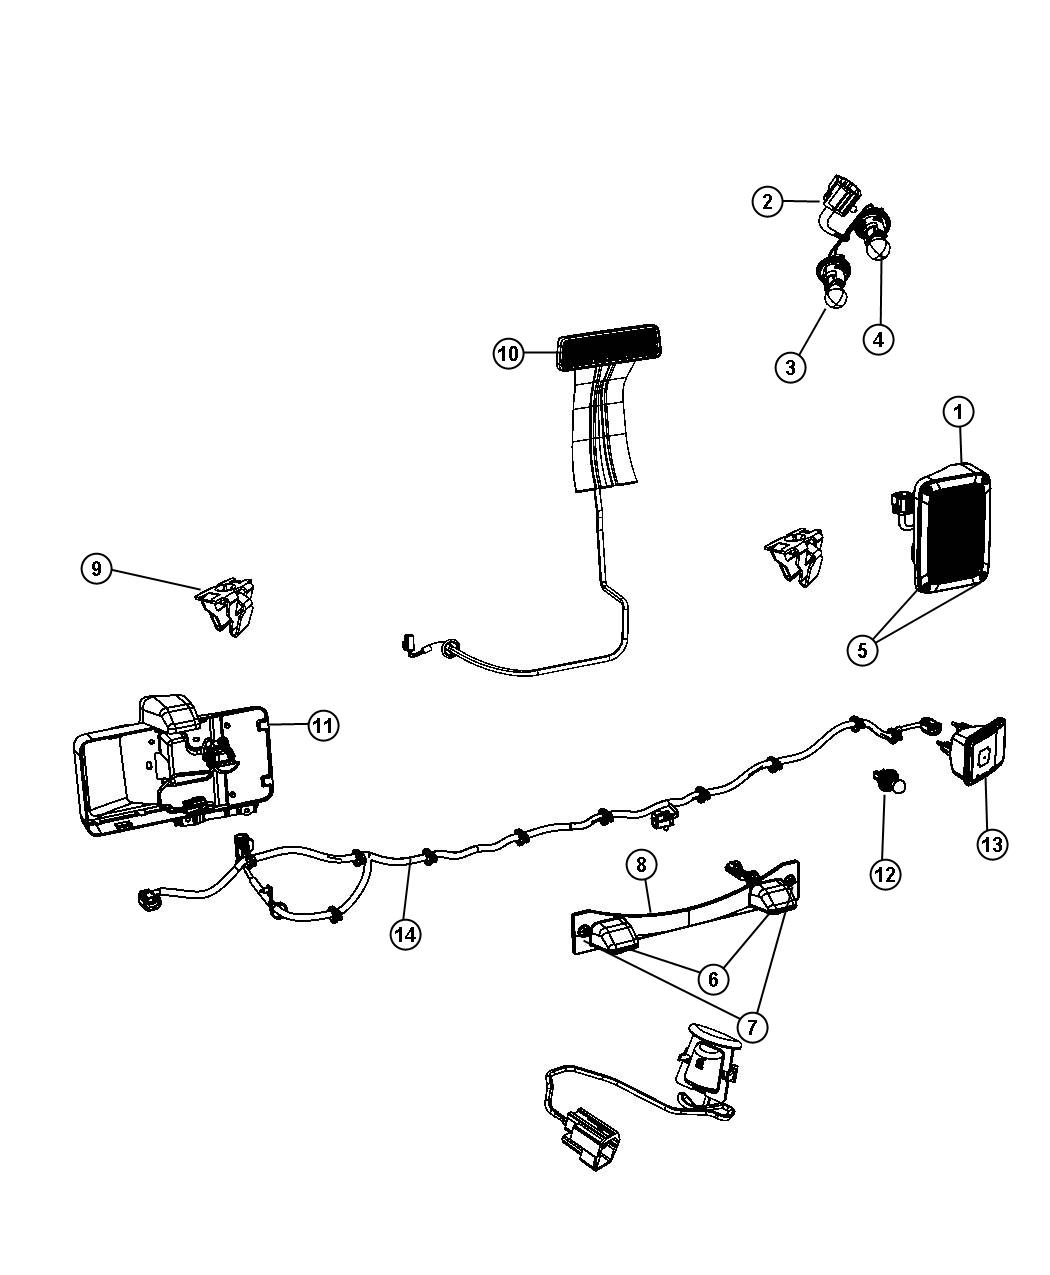 tags: #boss snow plow wiring#ford f650 wiring schematic#2006 f650 fuse box  diagram#ford f750 wiring schematic#2007 f650 wiring harness diagram#2001  sterling